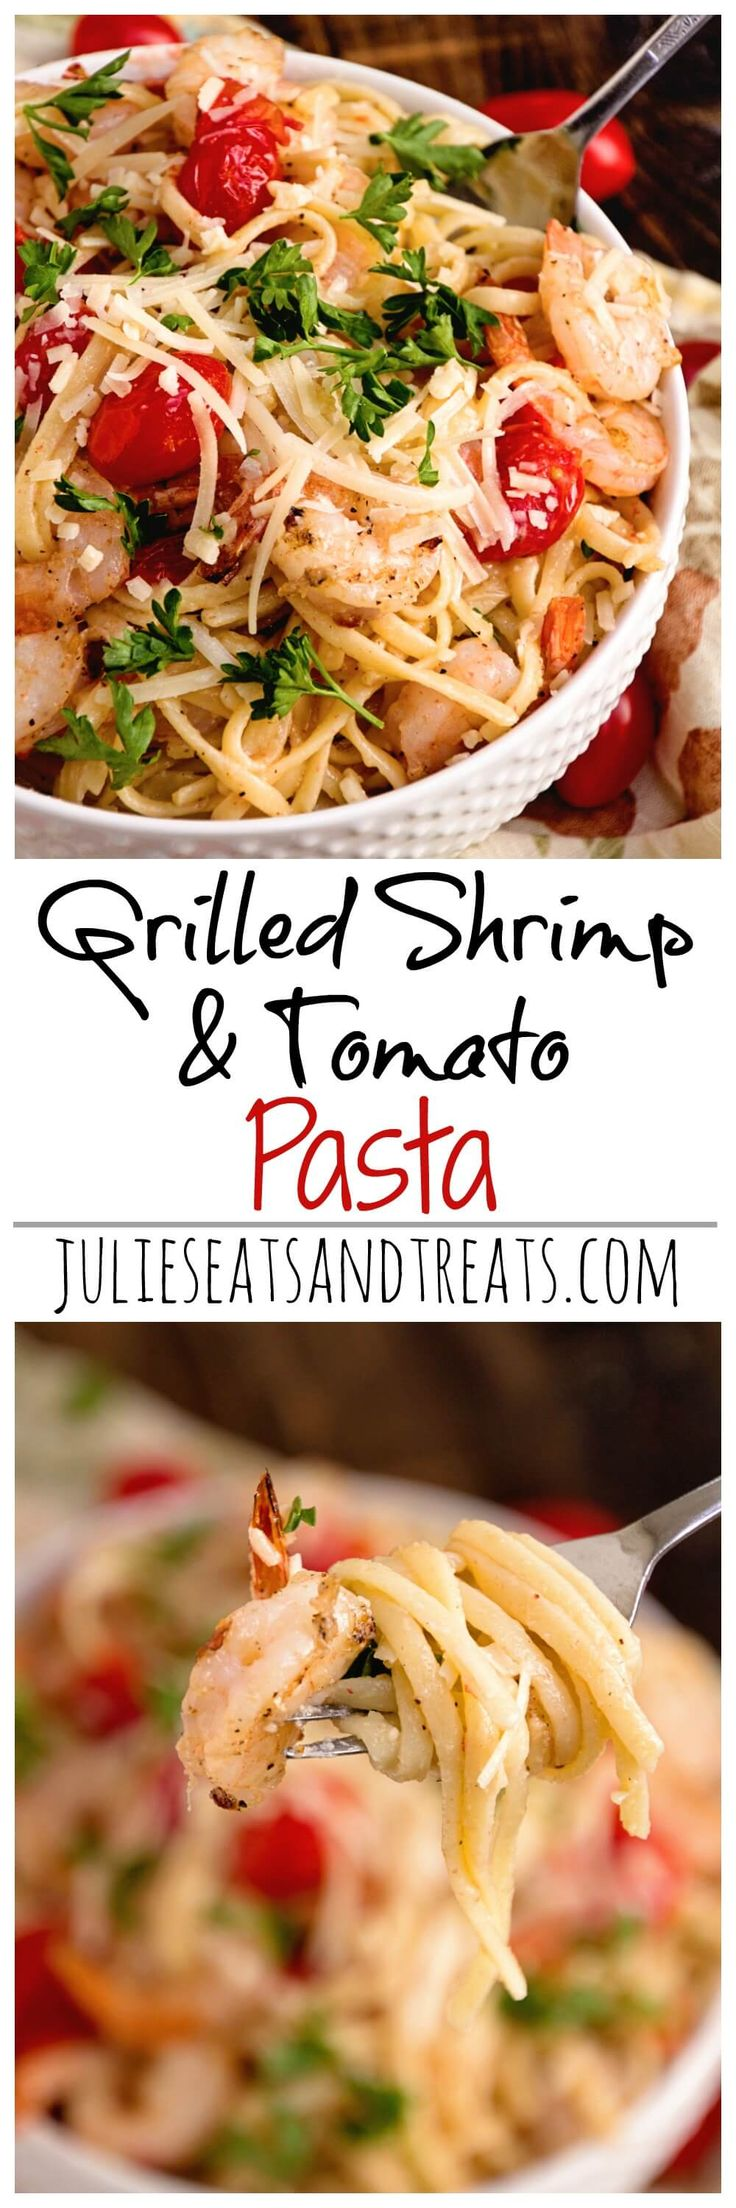 Grilled Shrimp & Tomato Pasta ~ Quick and Delicious Pasta Recipe Loaded with Seasoned Shrimp, Cherry Tomatoes and Parmesan Cheese! ~ http://www.julieseatsandtreats.com